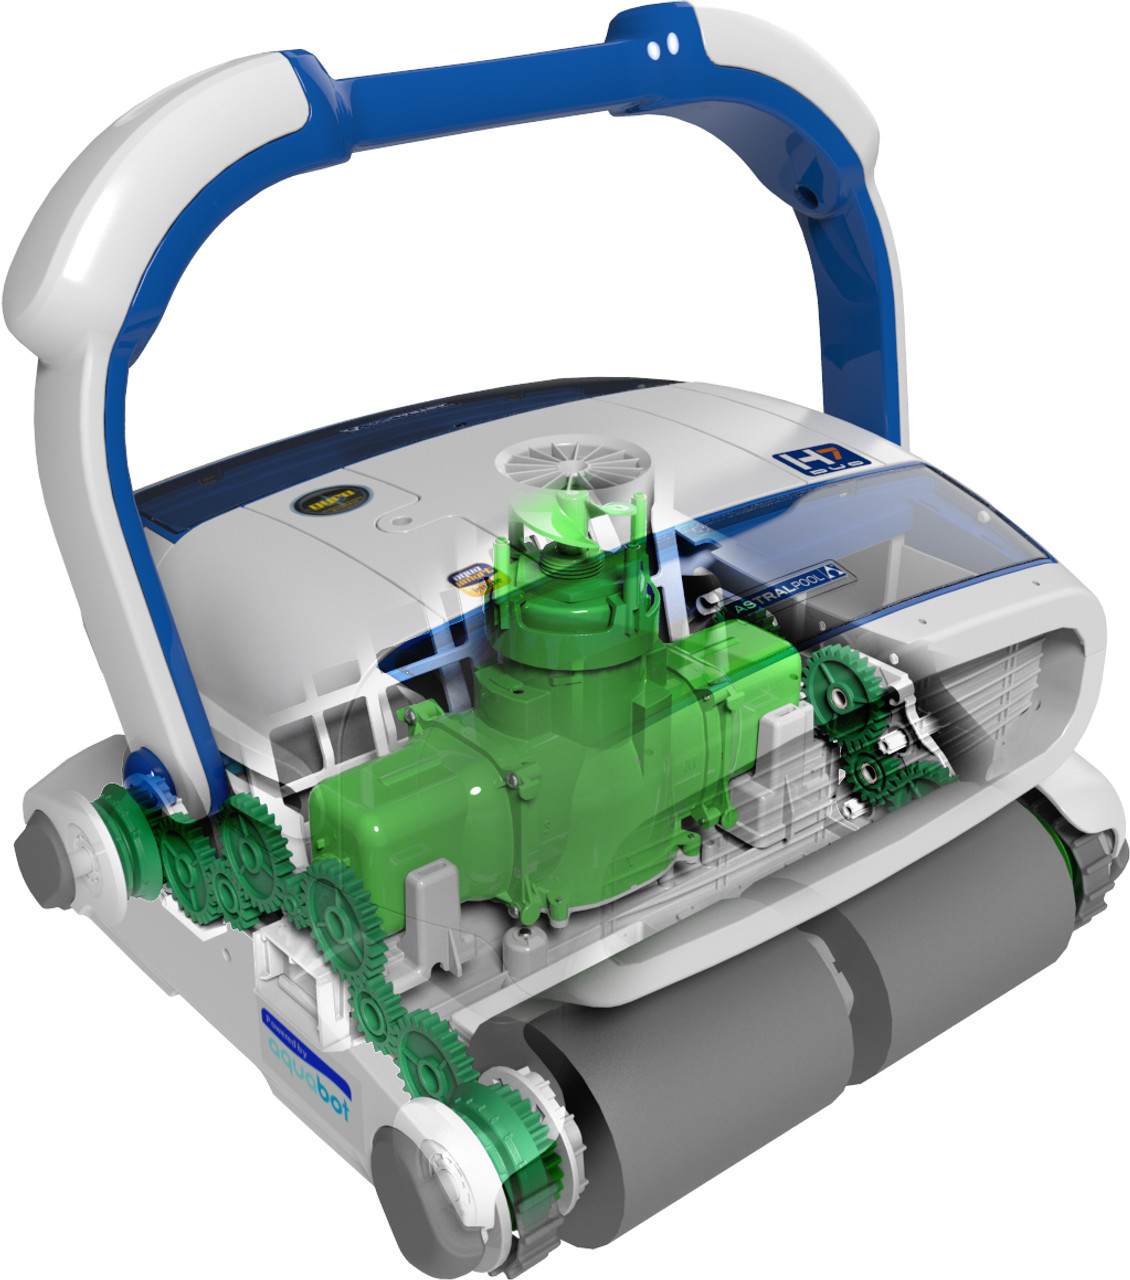 Astral H7 automatic swimming pool cleaner